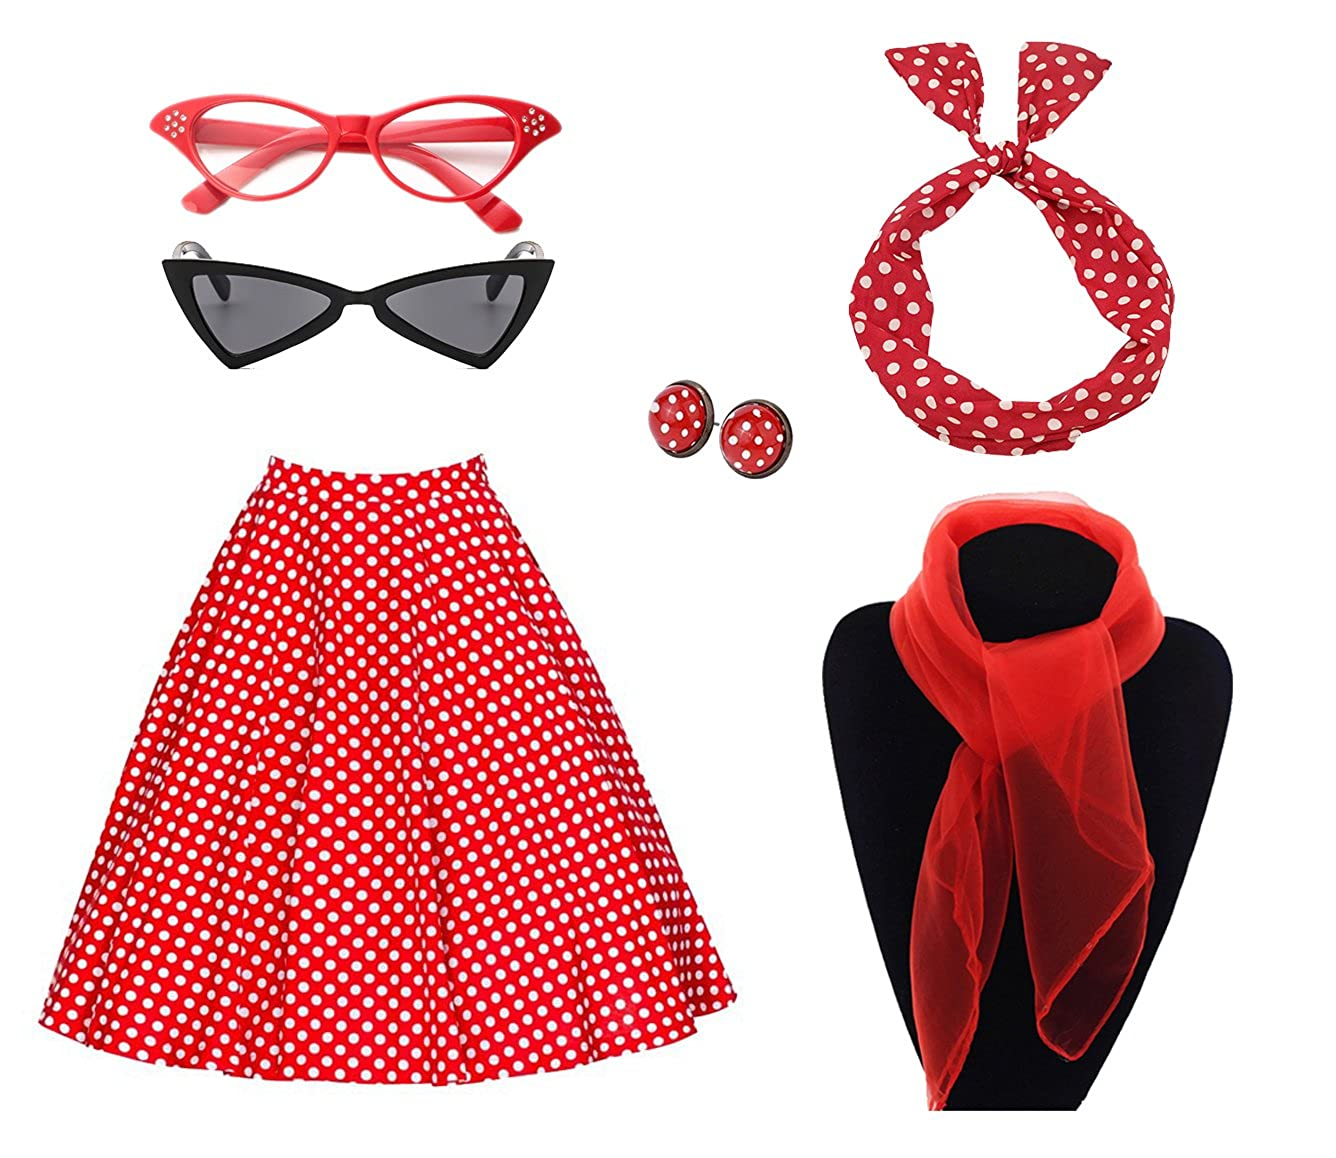 50s Women Costume Accessories Set Vintage Dot Skirt Scarf Headband Earrings Cat Eye Glasses for Party